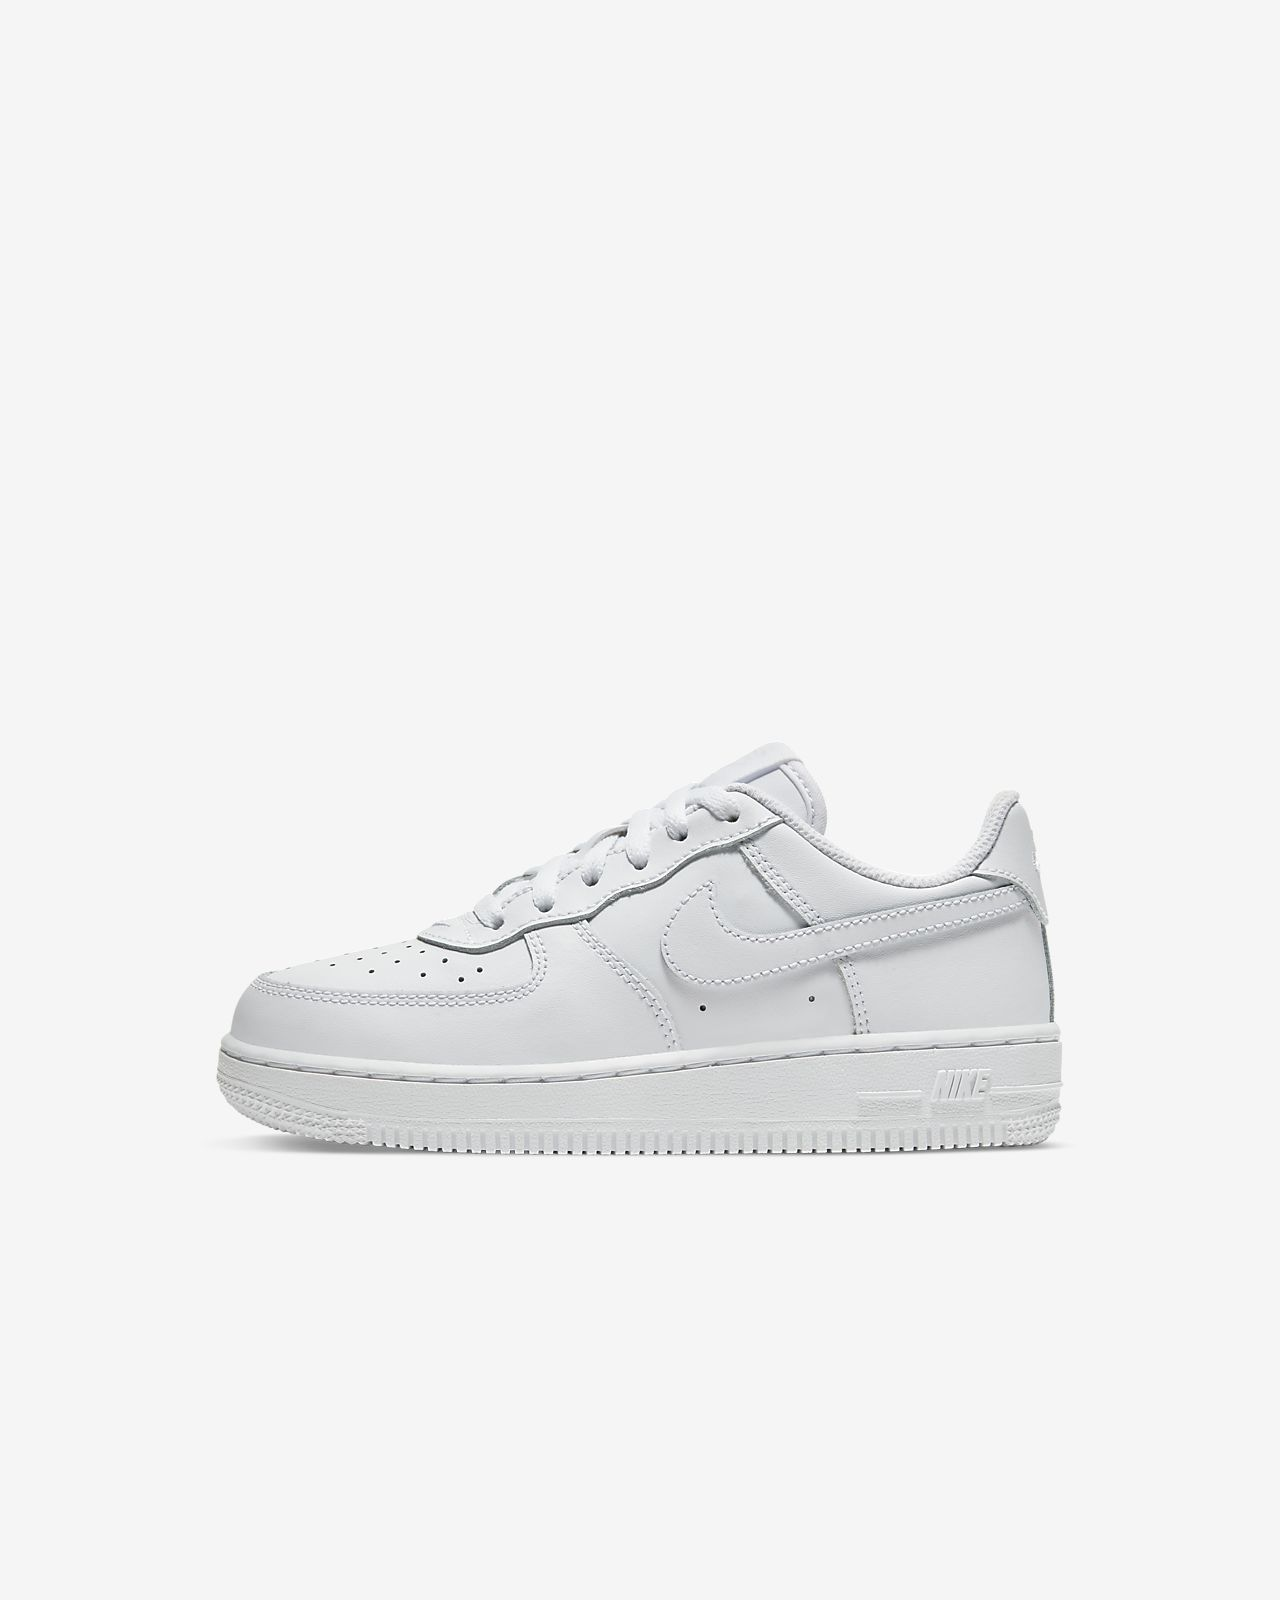 Nike Air Force 1 Toddler Size 3 C White Shoes Leat